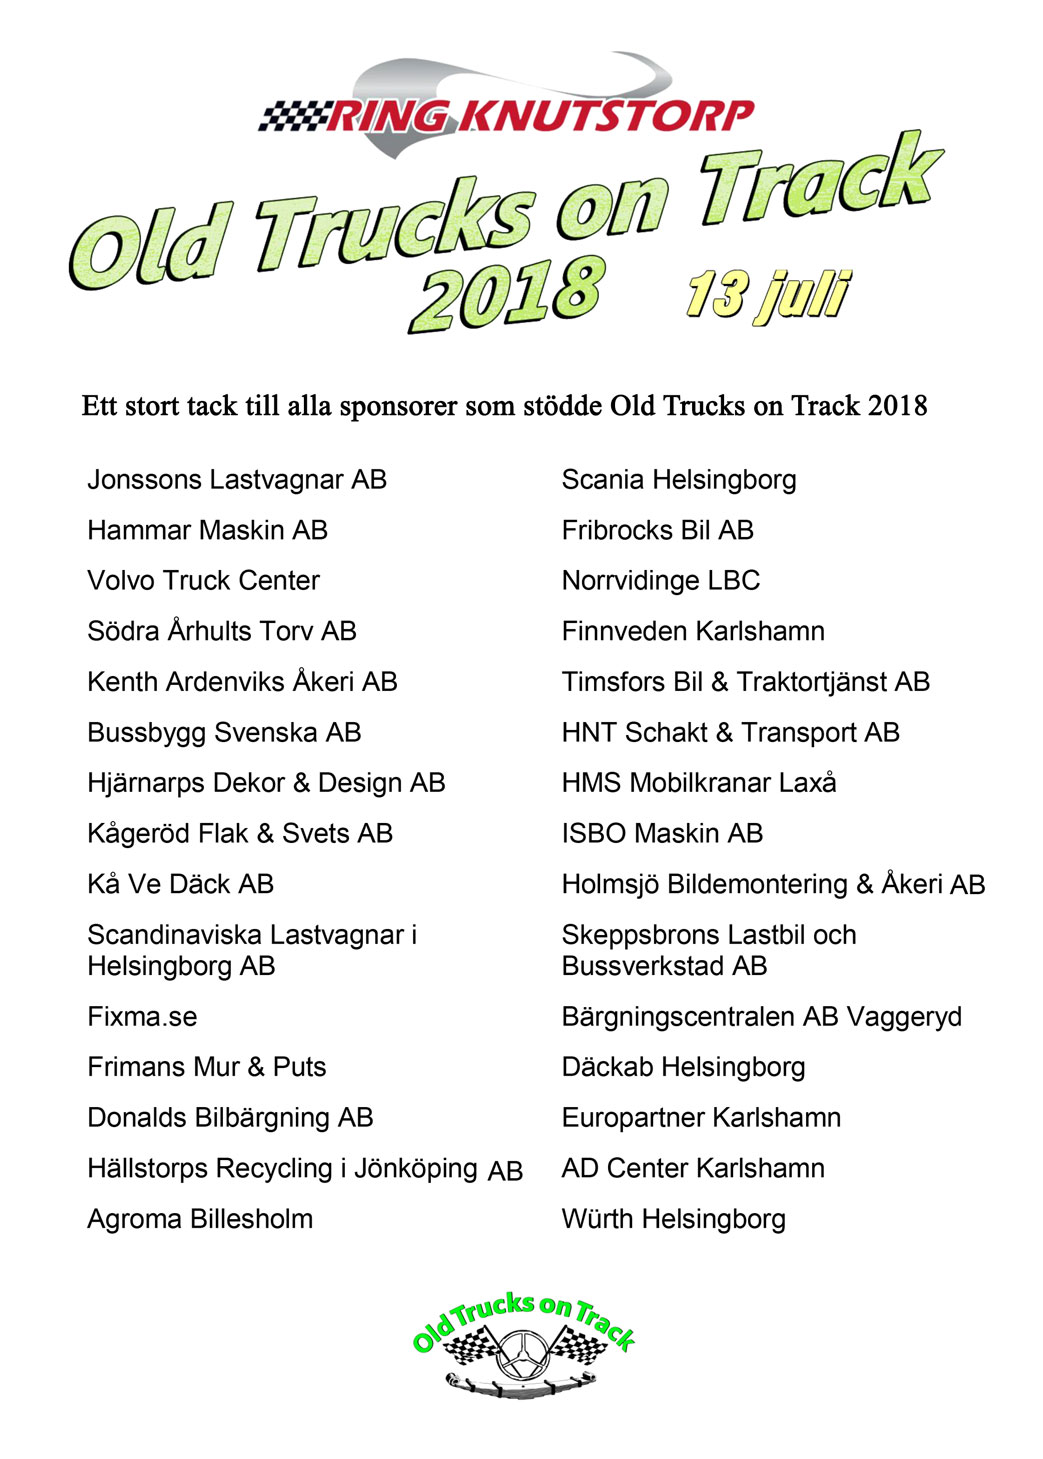 old-trucks-on-track-2018-sponsor2jpg